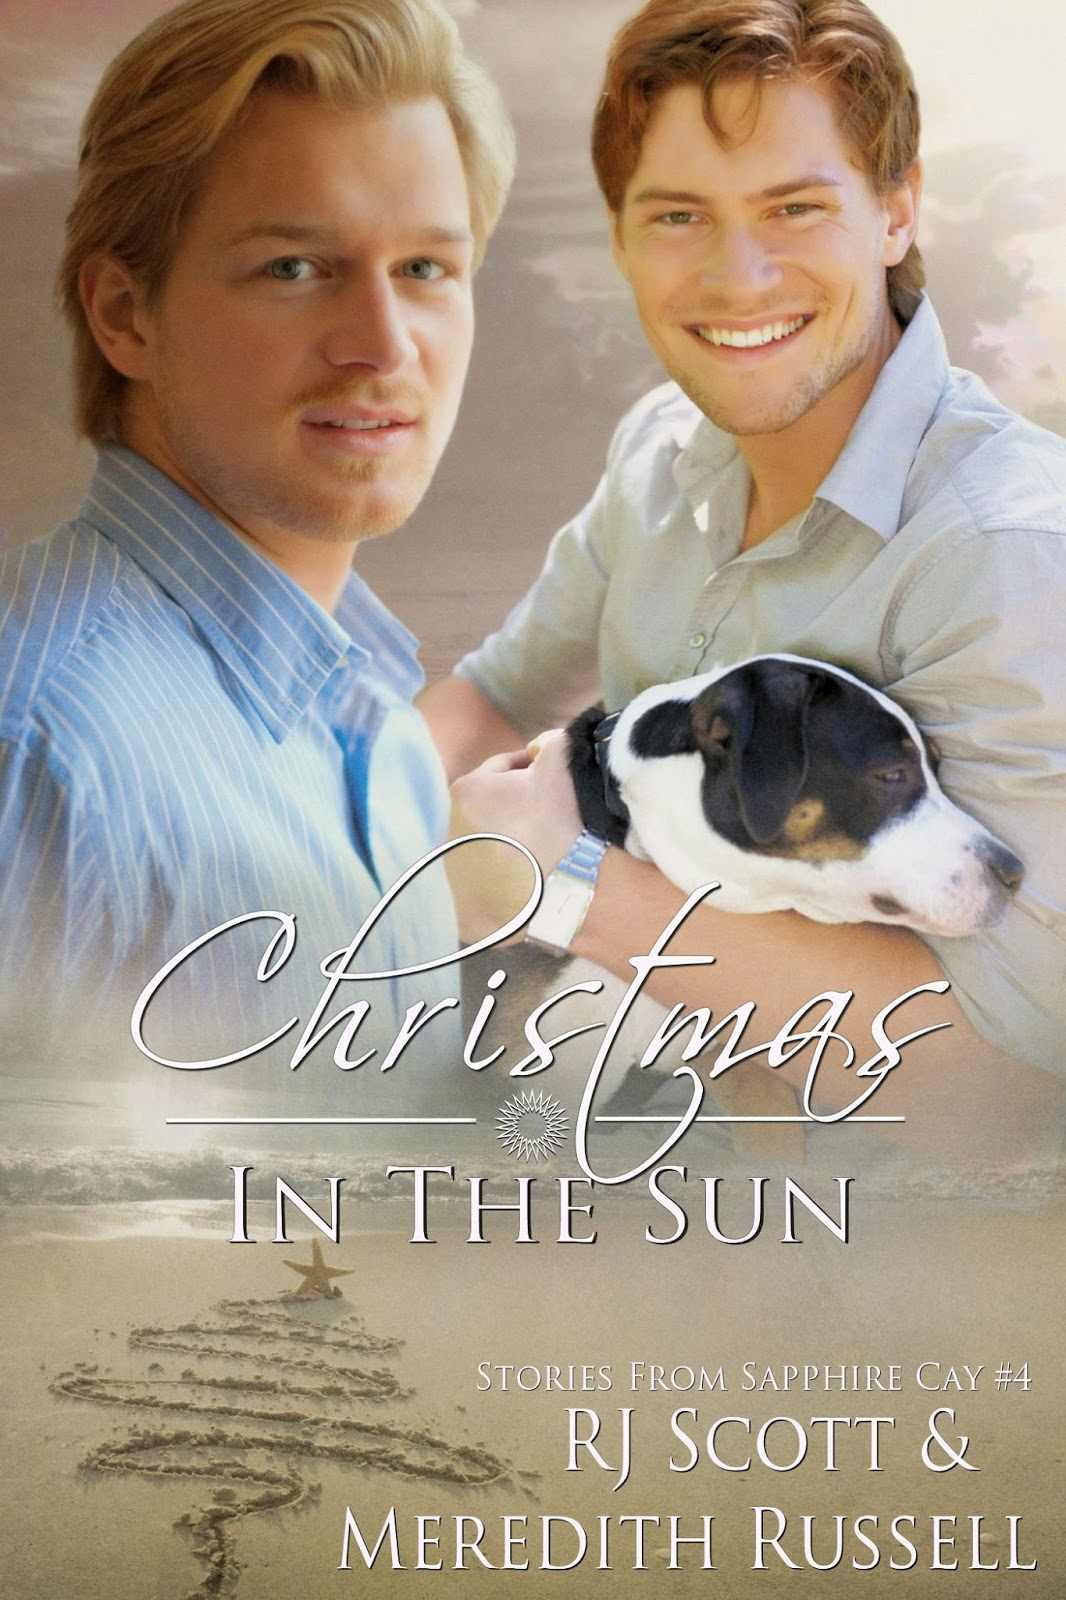 Chase The Sun (Sapphire Cay, book 3) by Meredith Russell and RJ Scott